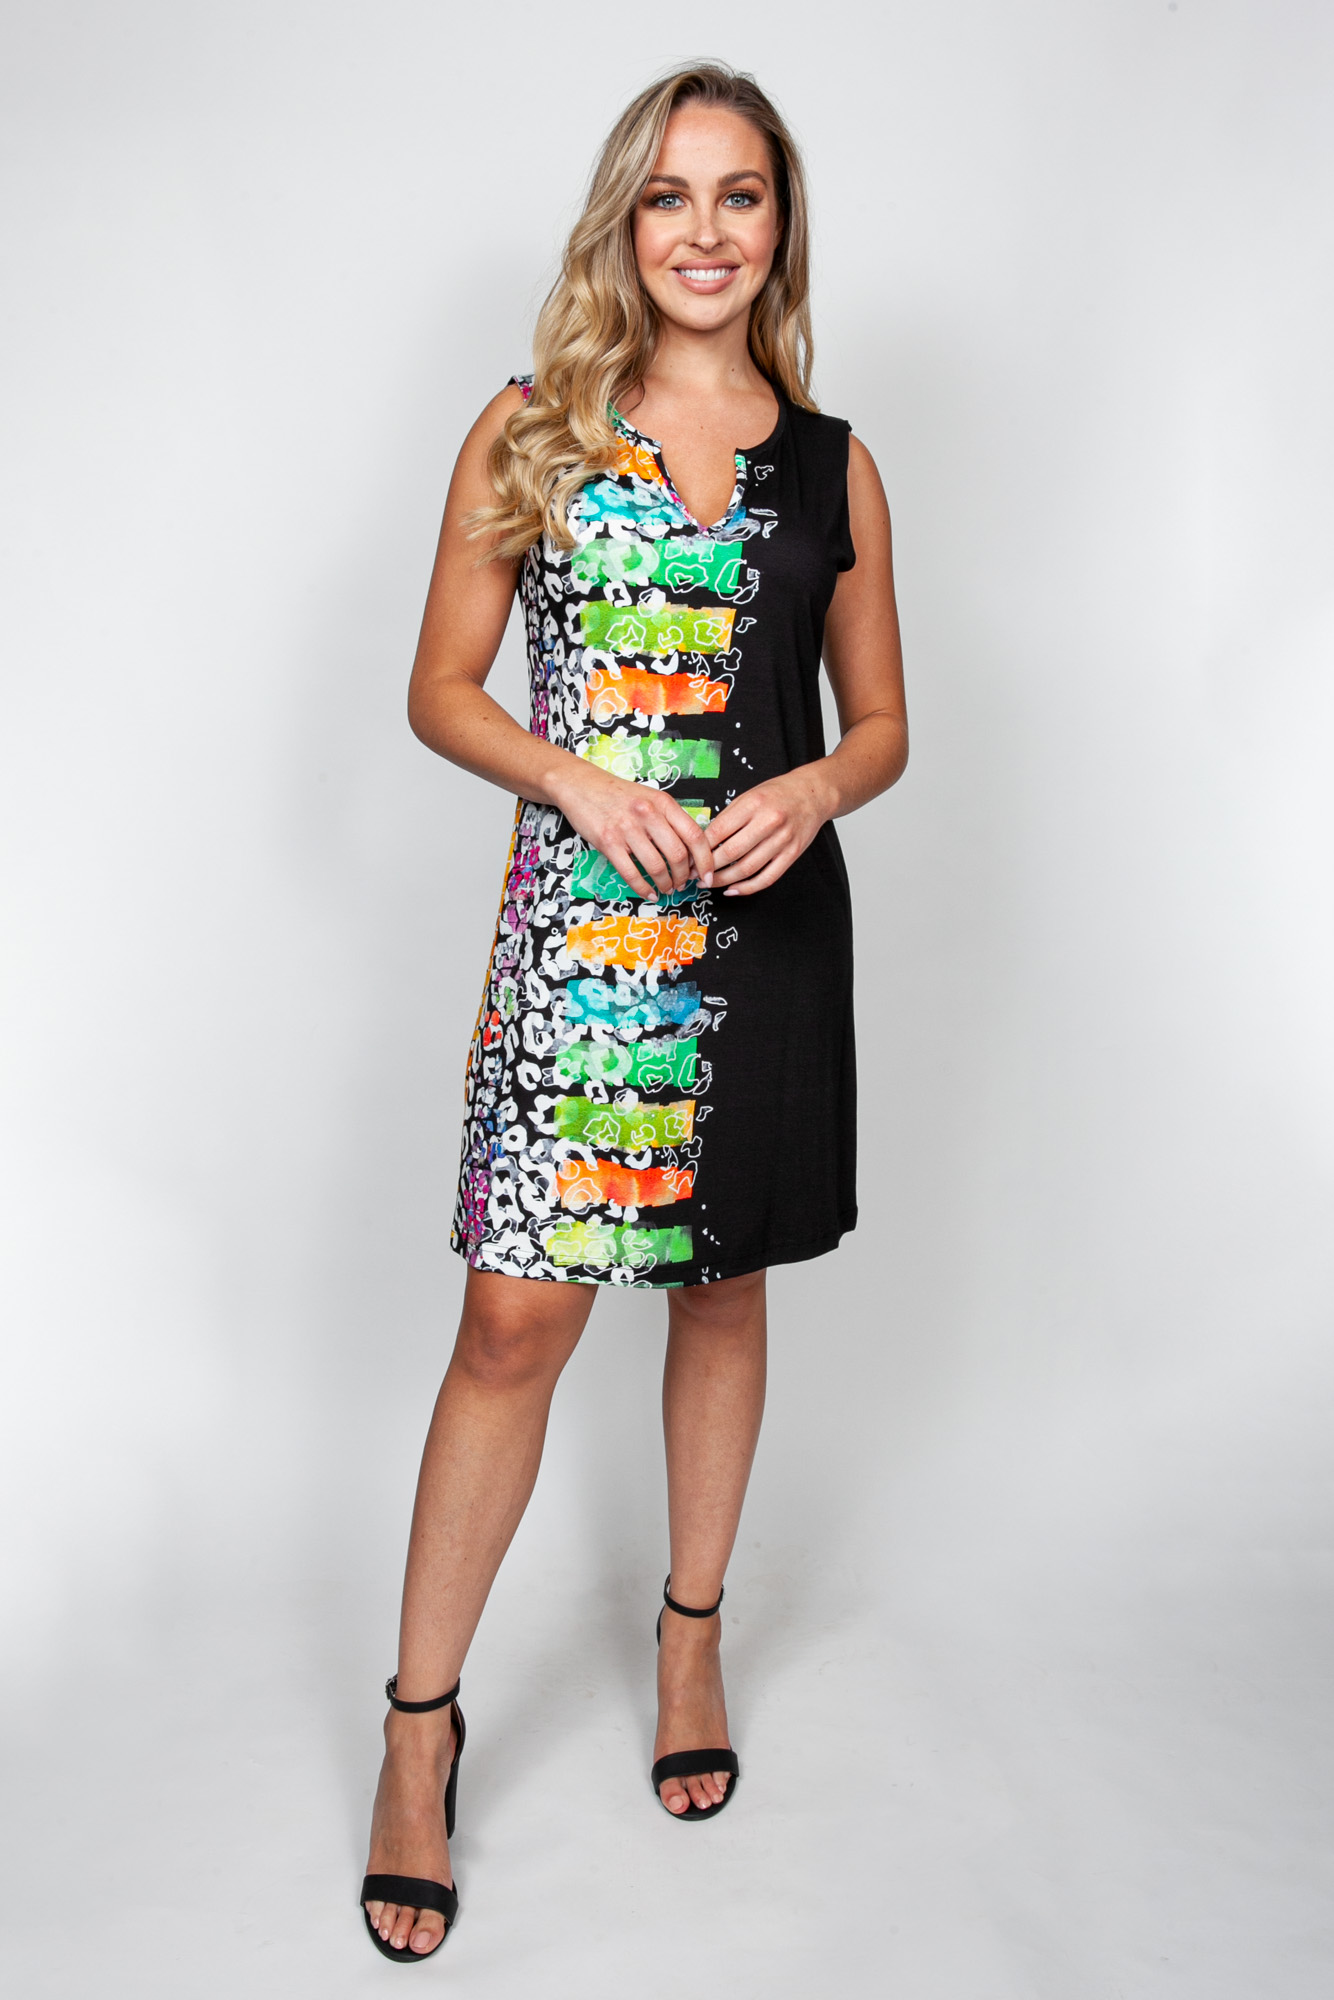 Style # 44458-20, p 7 Viscose Prints Print: Safari + 5 others